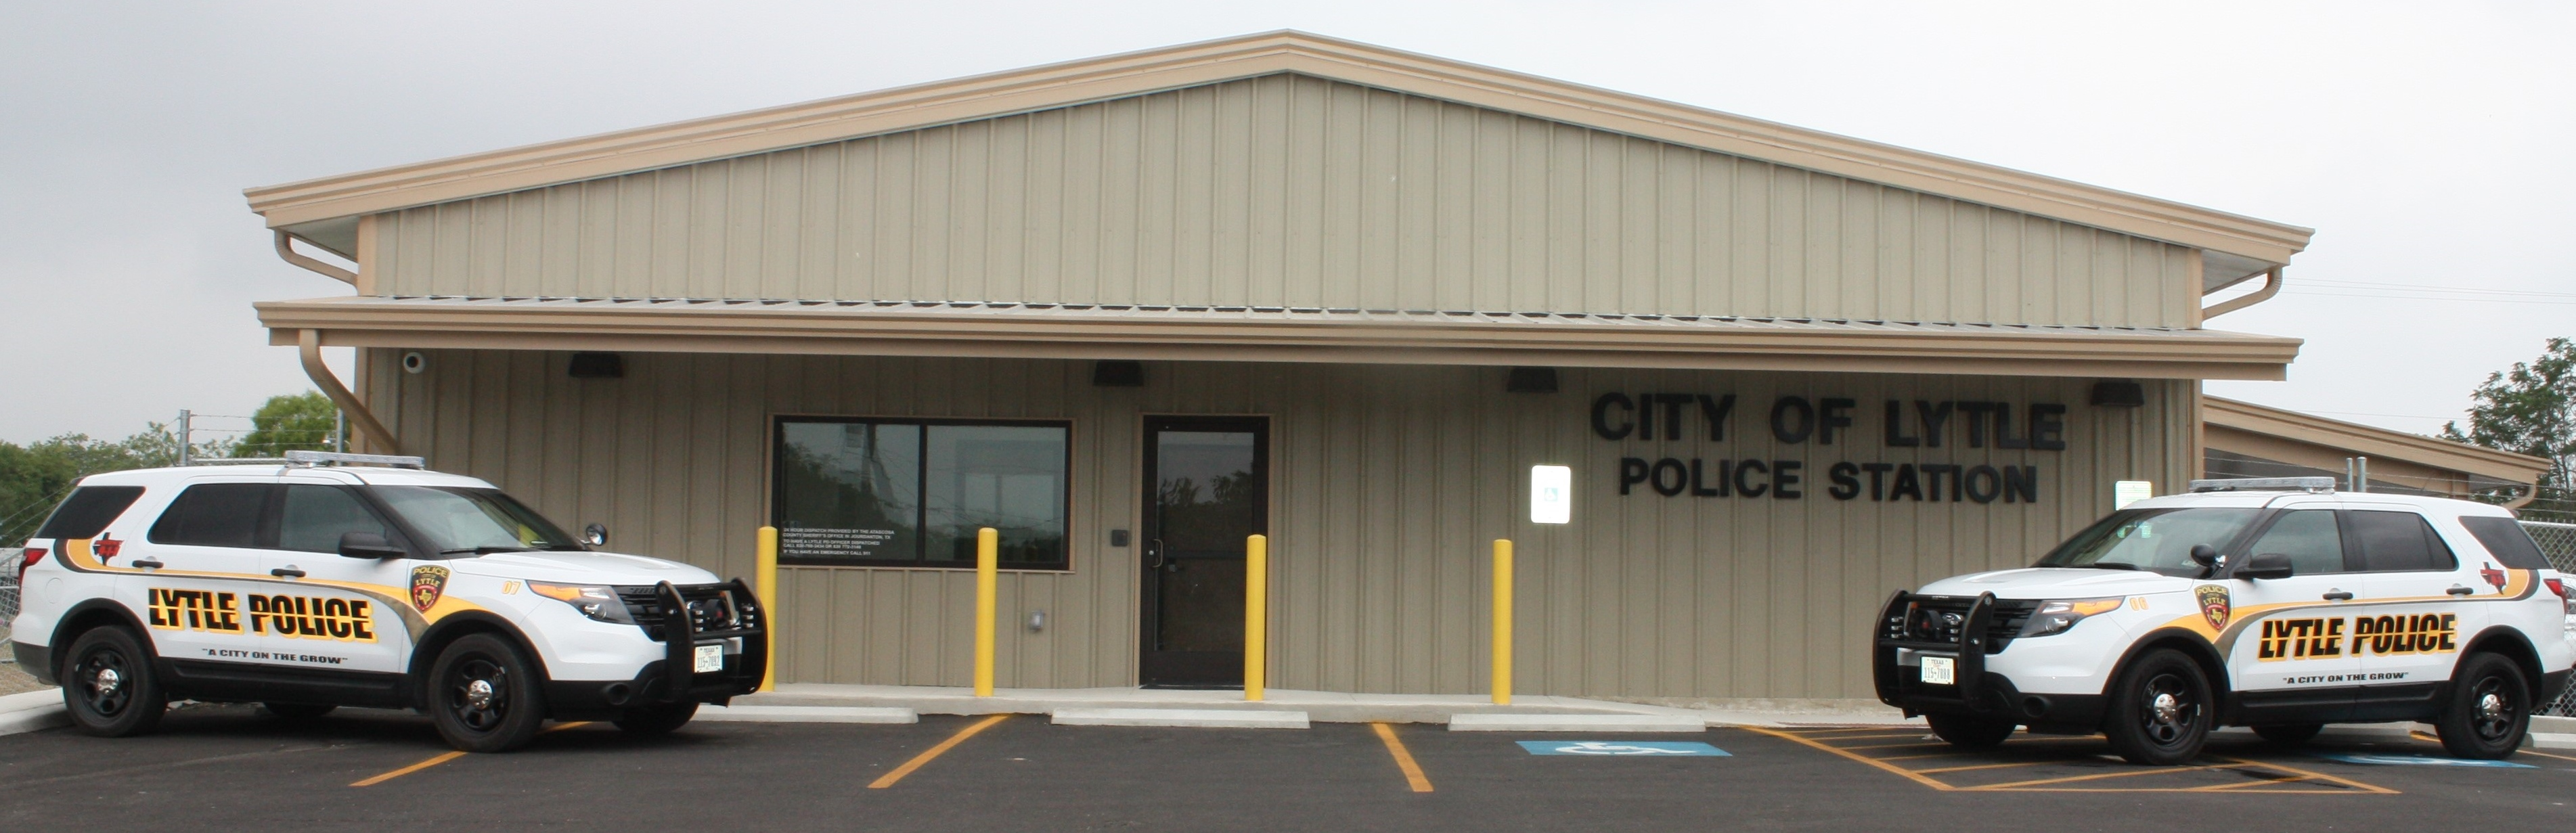 City of Lytle Police Station